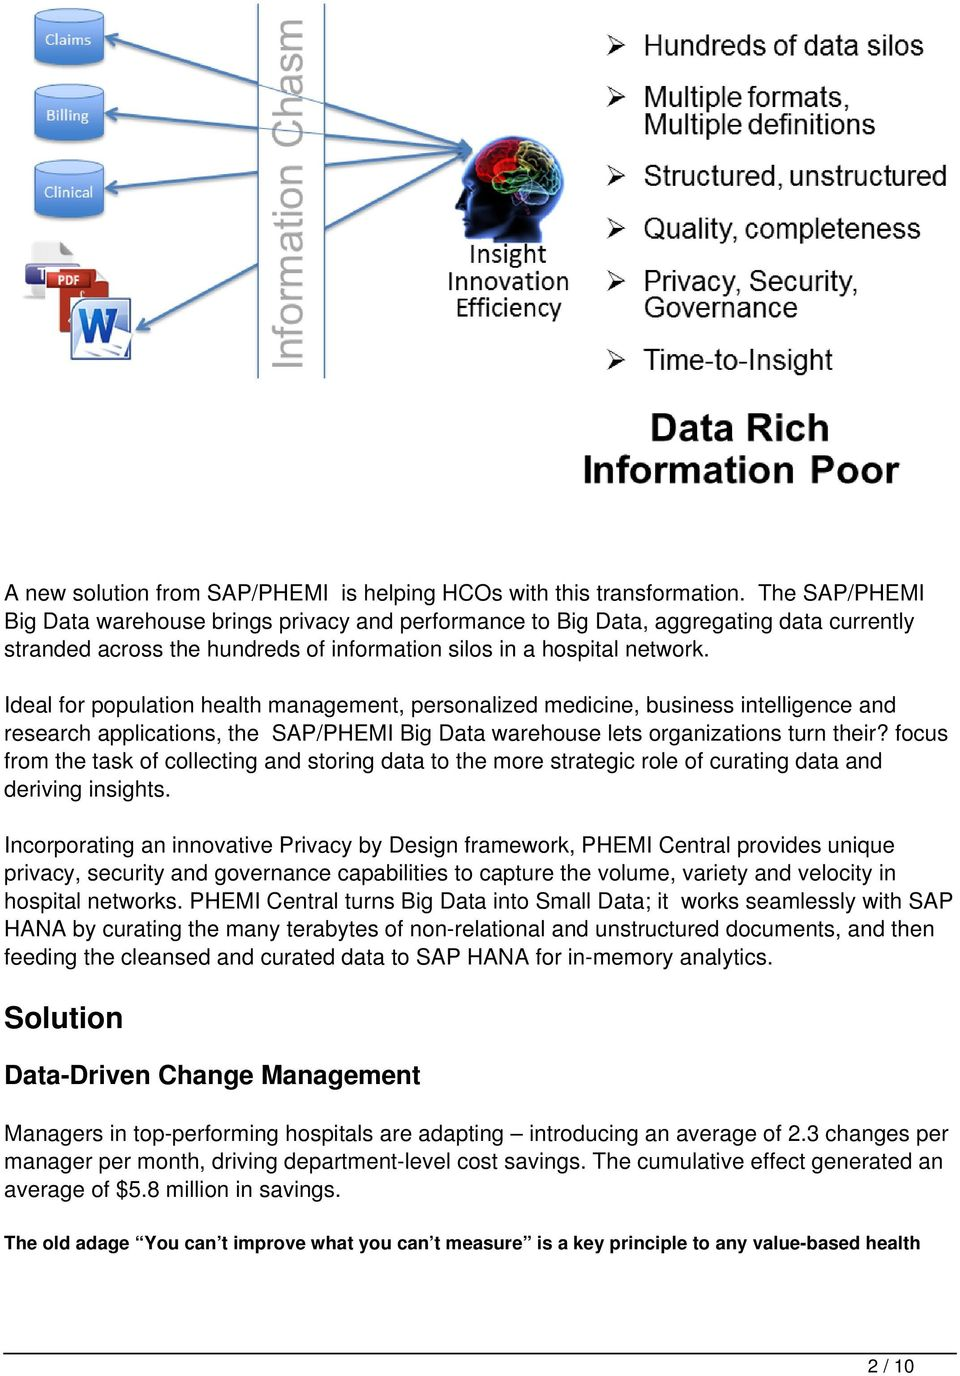 Ideal for population health management, personalized medicine, business intelligence and research applications, the SAP/PHEMI Big Data warehouse lets organizations turn their?